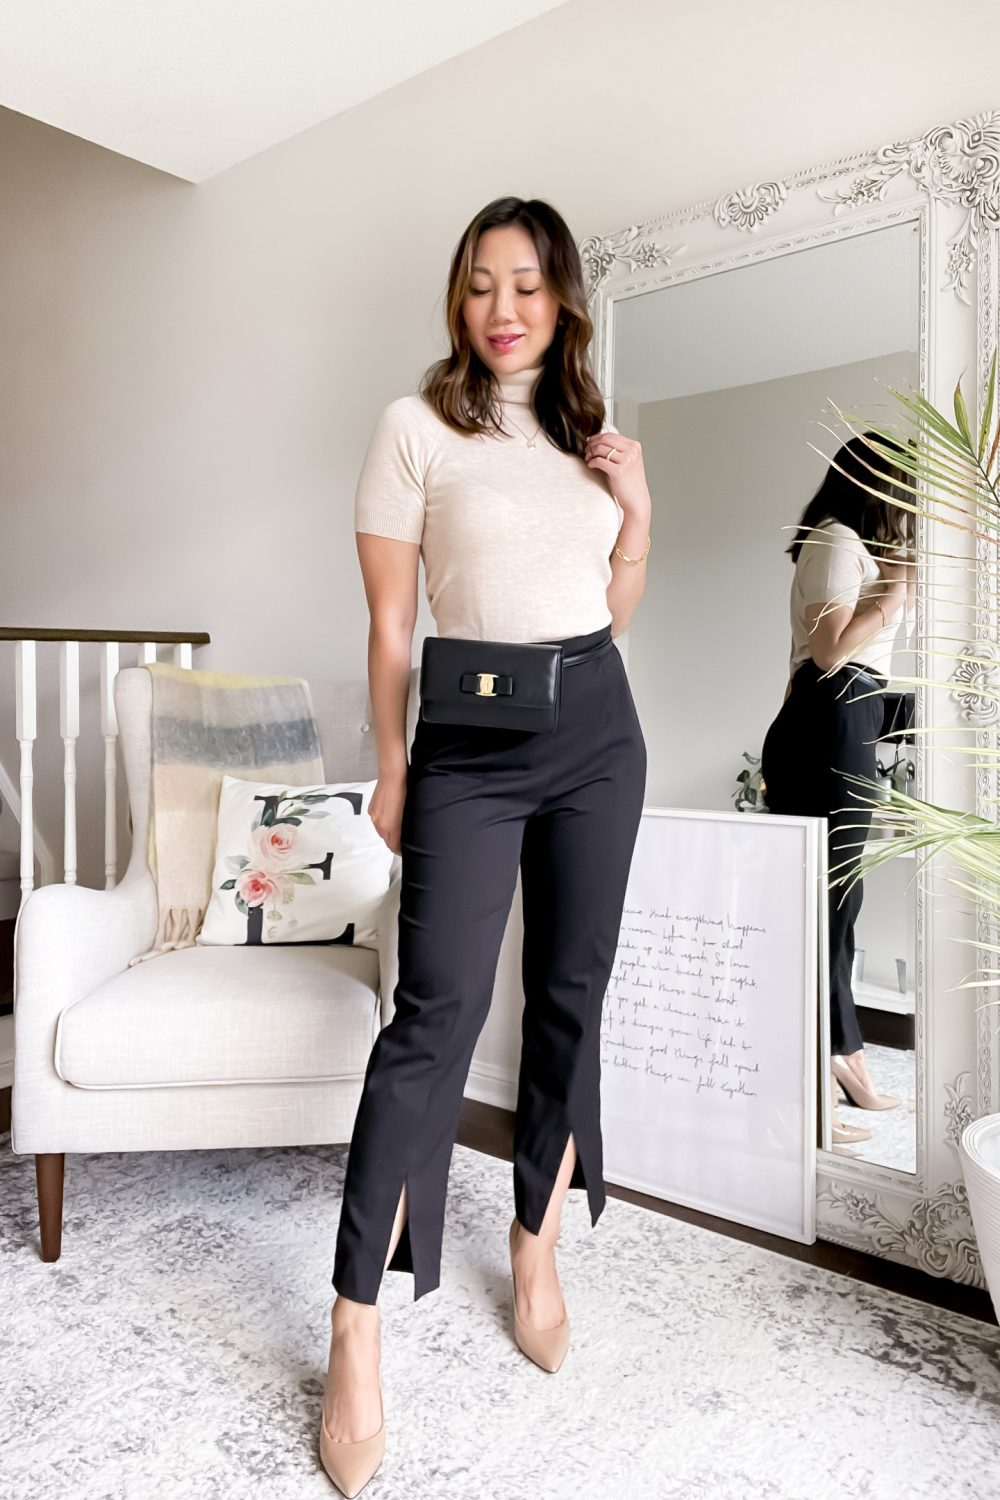 SHEIN MOTF review - workwear look for fall with knit turtleneck made from eco friendly materials and black pants with slit.